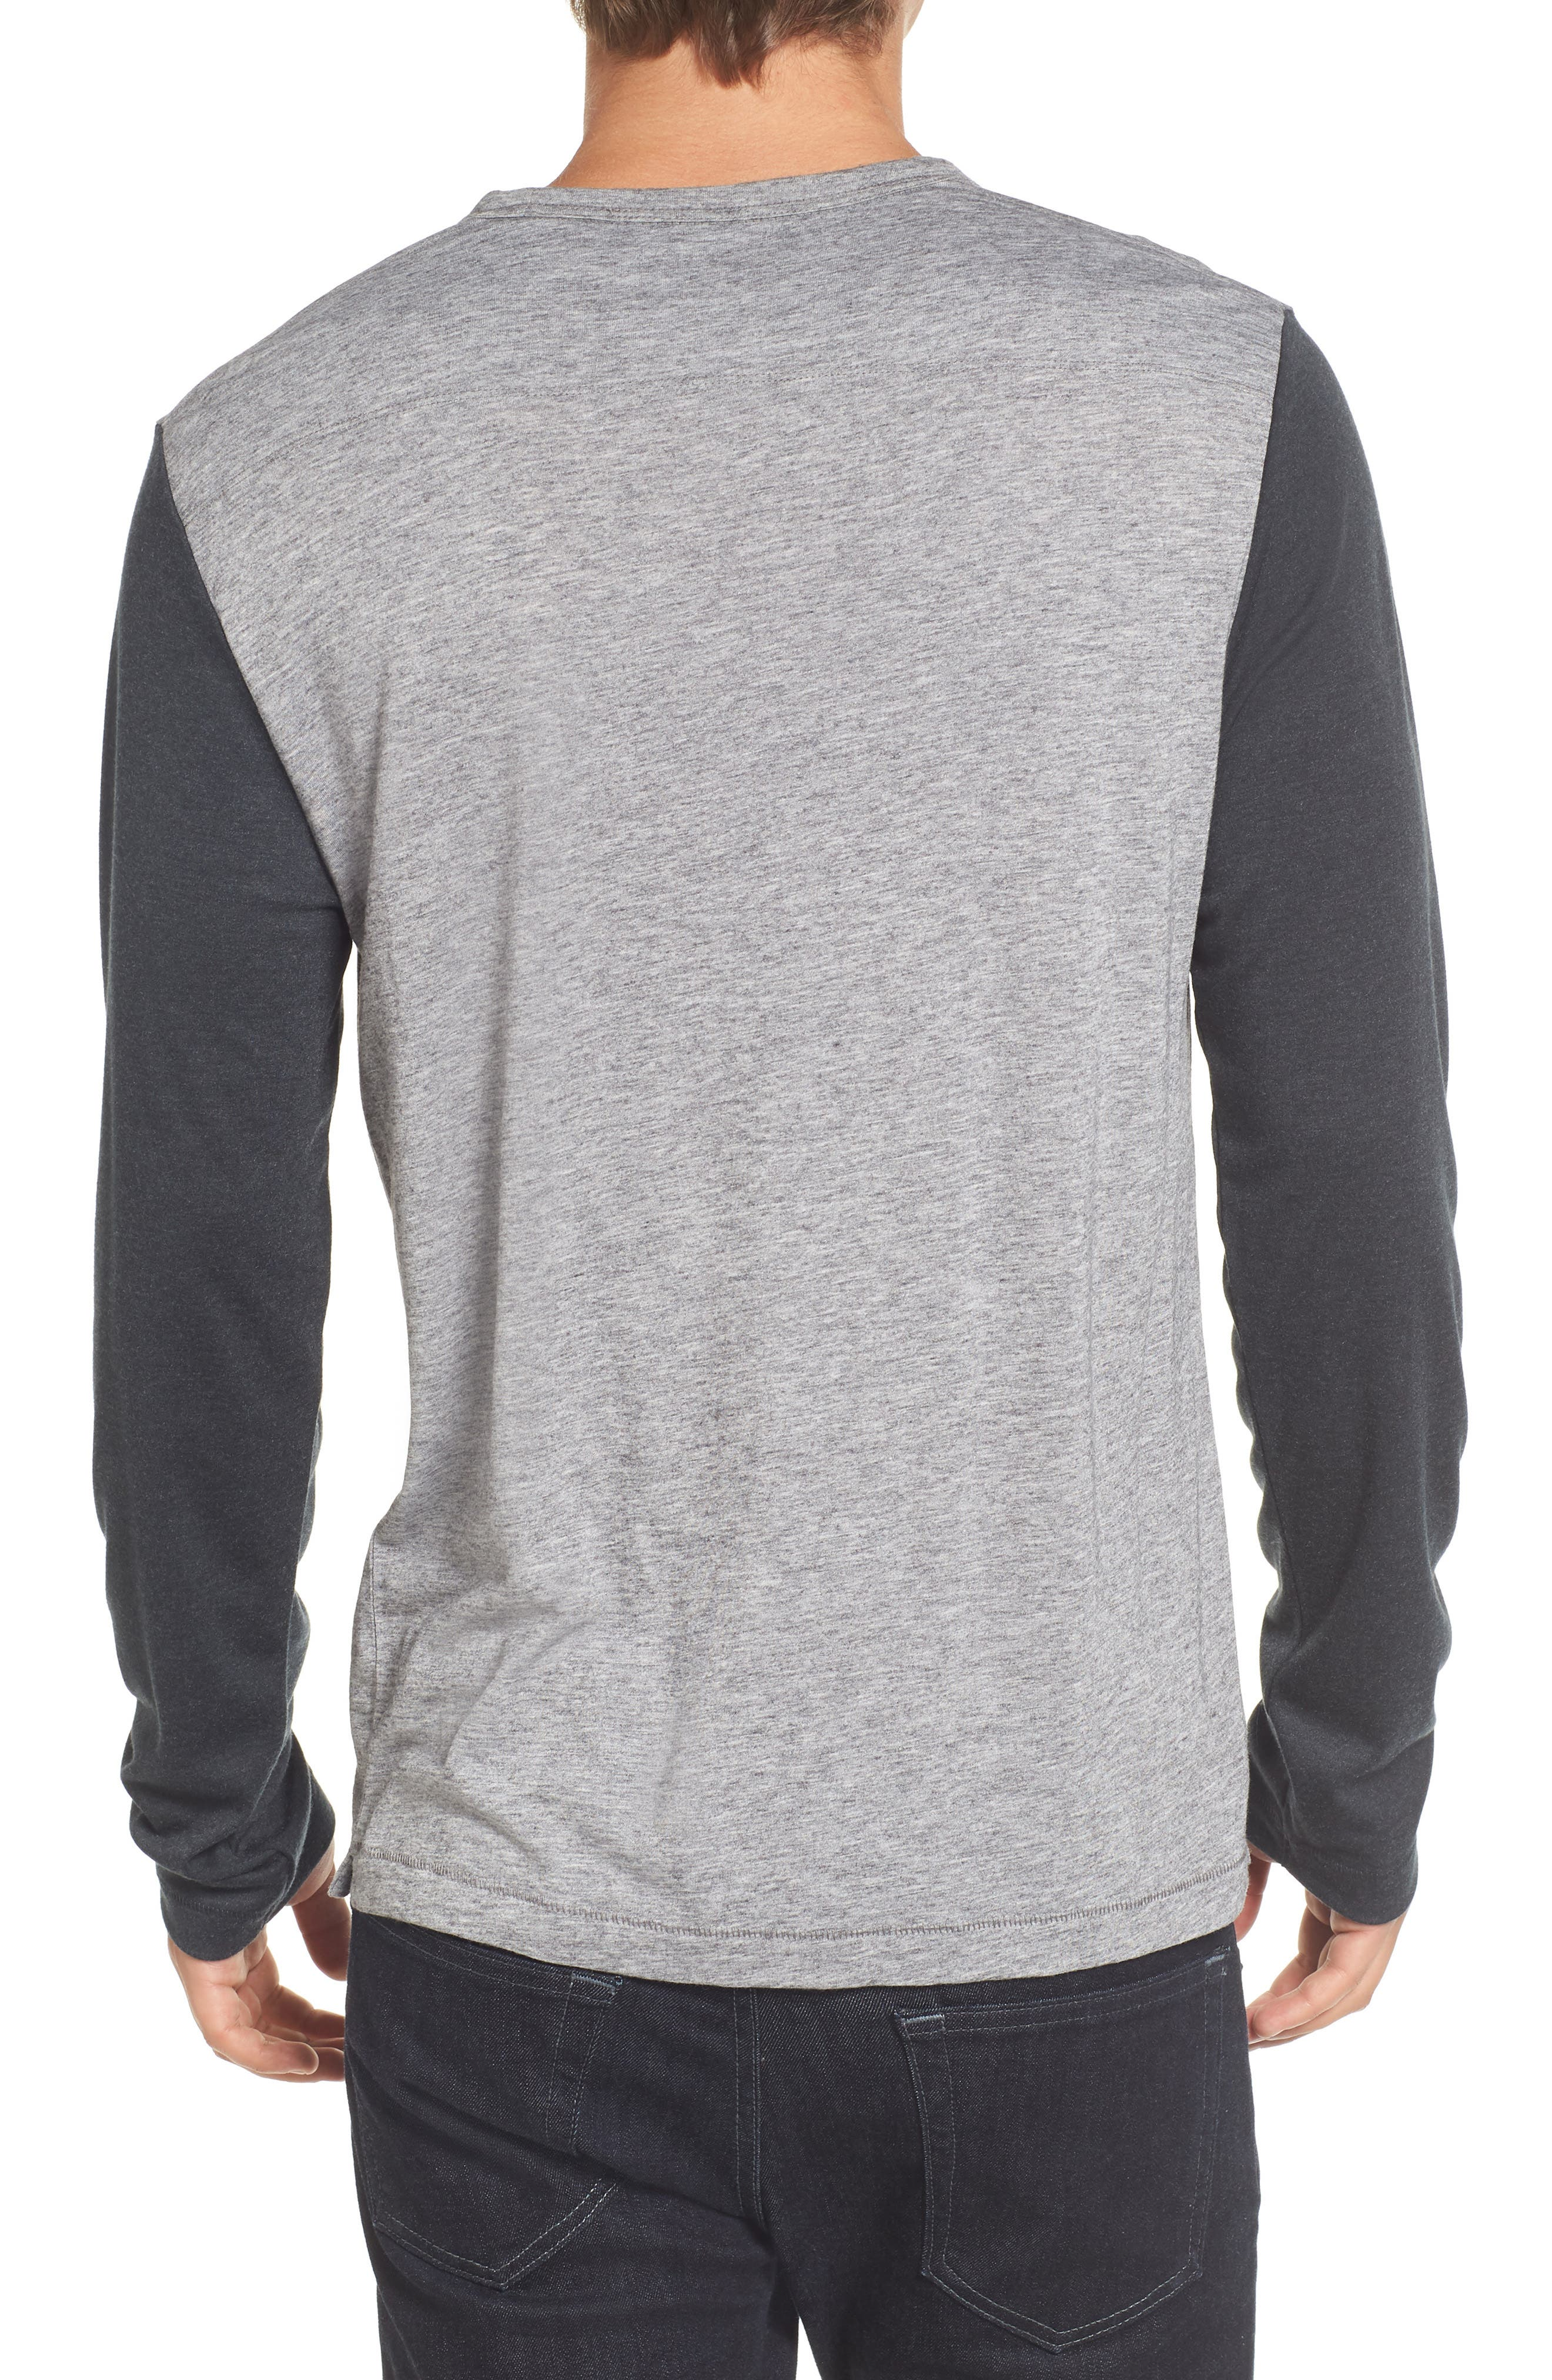 Alternate Image 2  - French Connection Contrast Long Sleeve T-Shirt